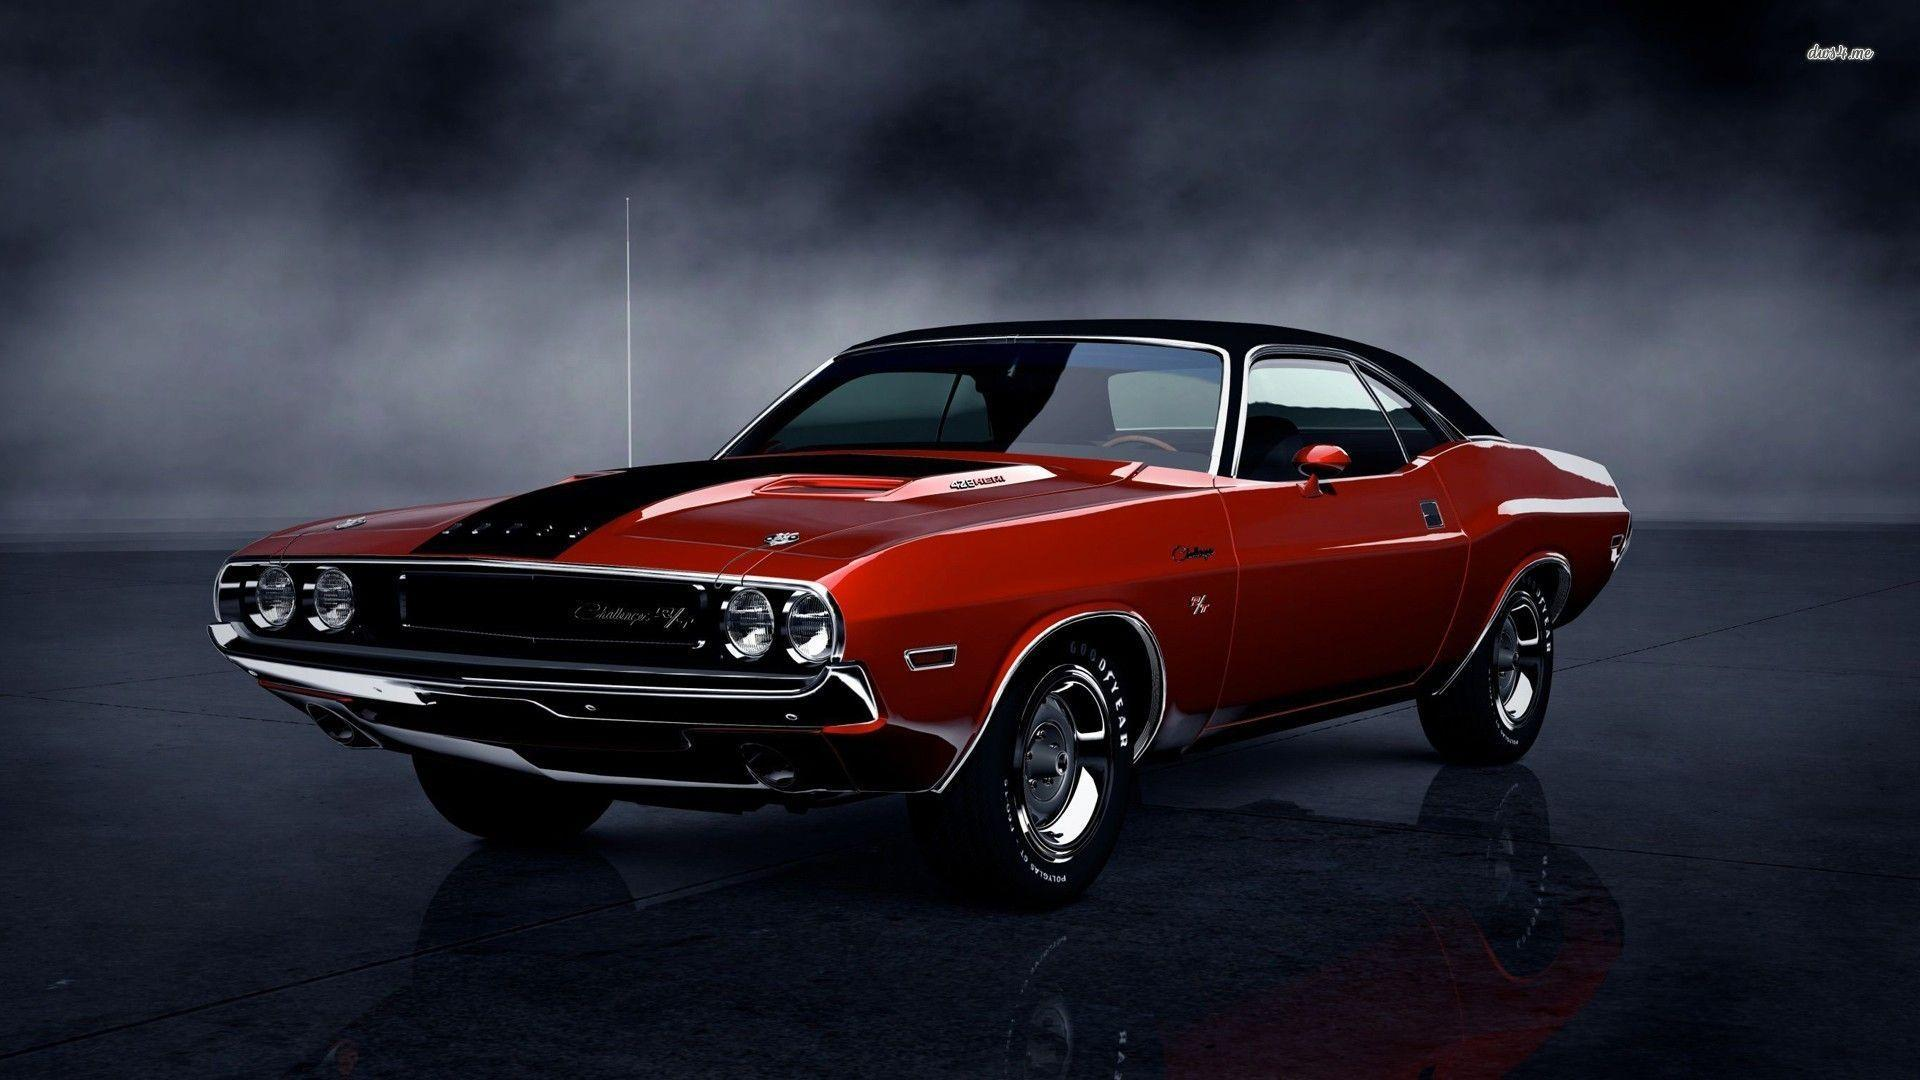 Dodge Challenger 1970 Wallpaper 1970 Dodge Challenger Wallpapers Wallpaper Cave